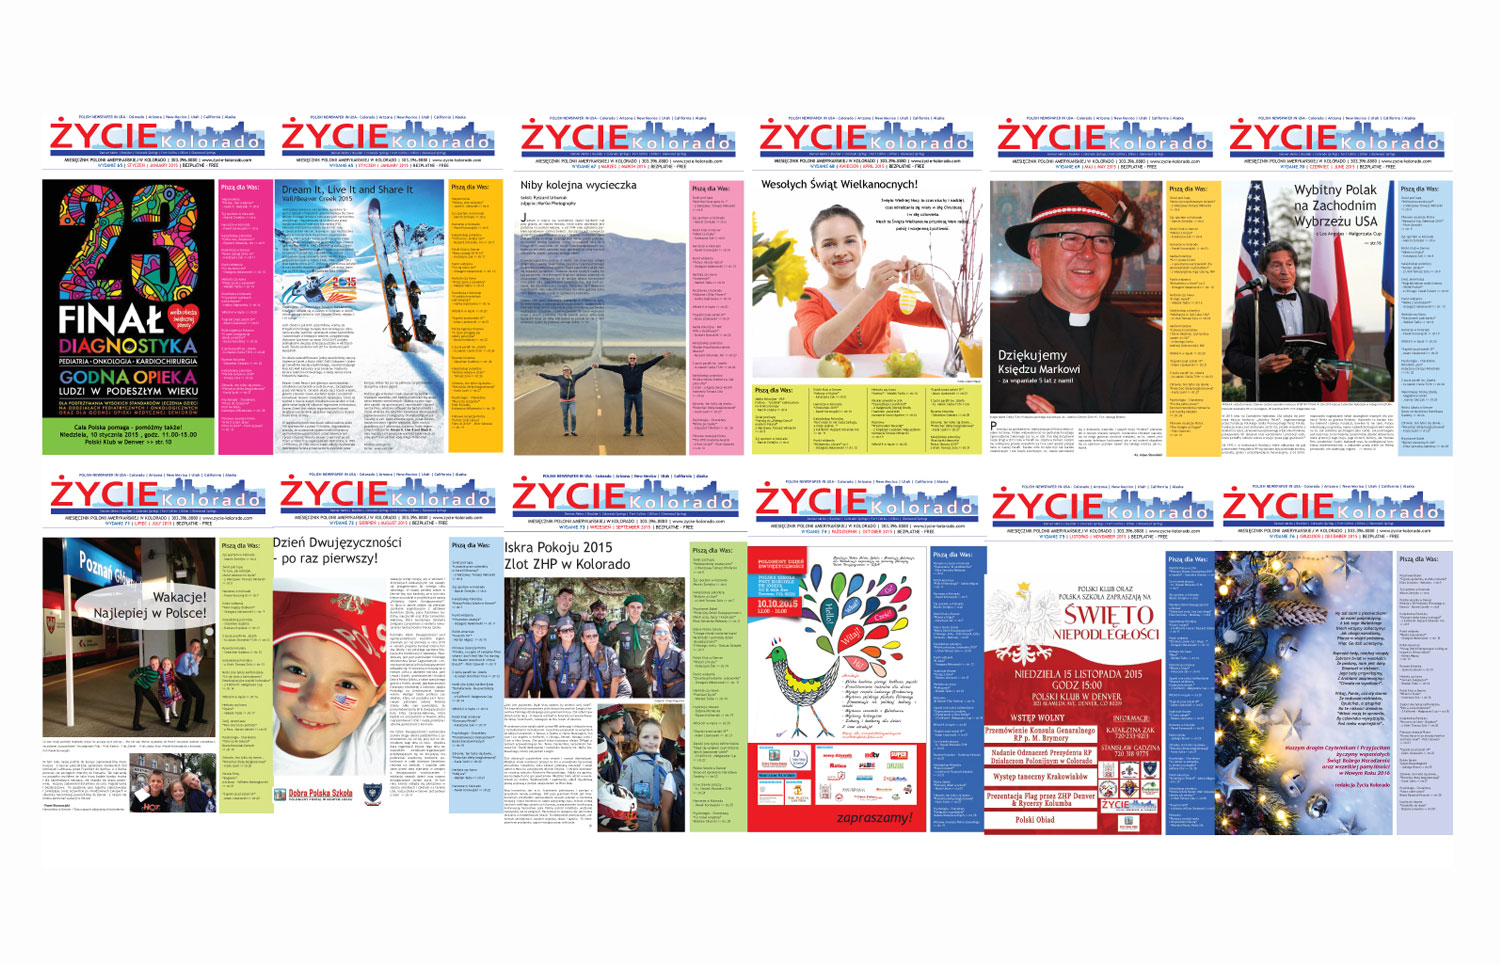 Zycie-Kolorado_Polish-Newspaper-in-Colorado_4.jpg